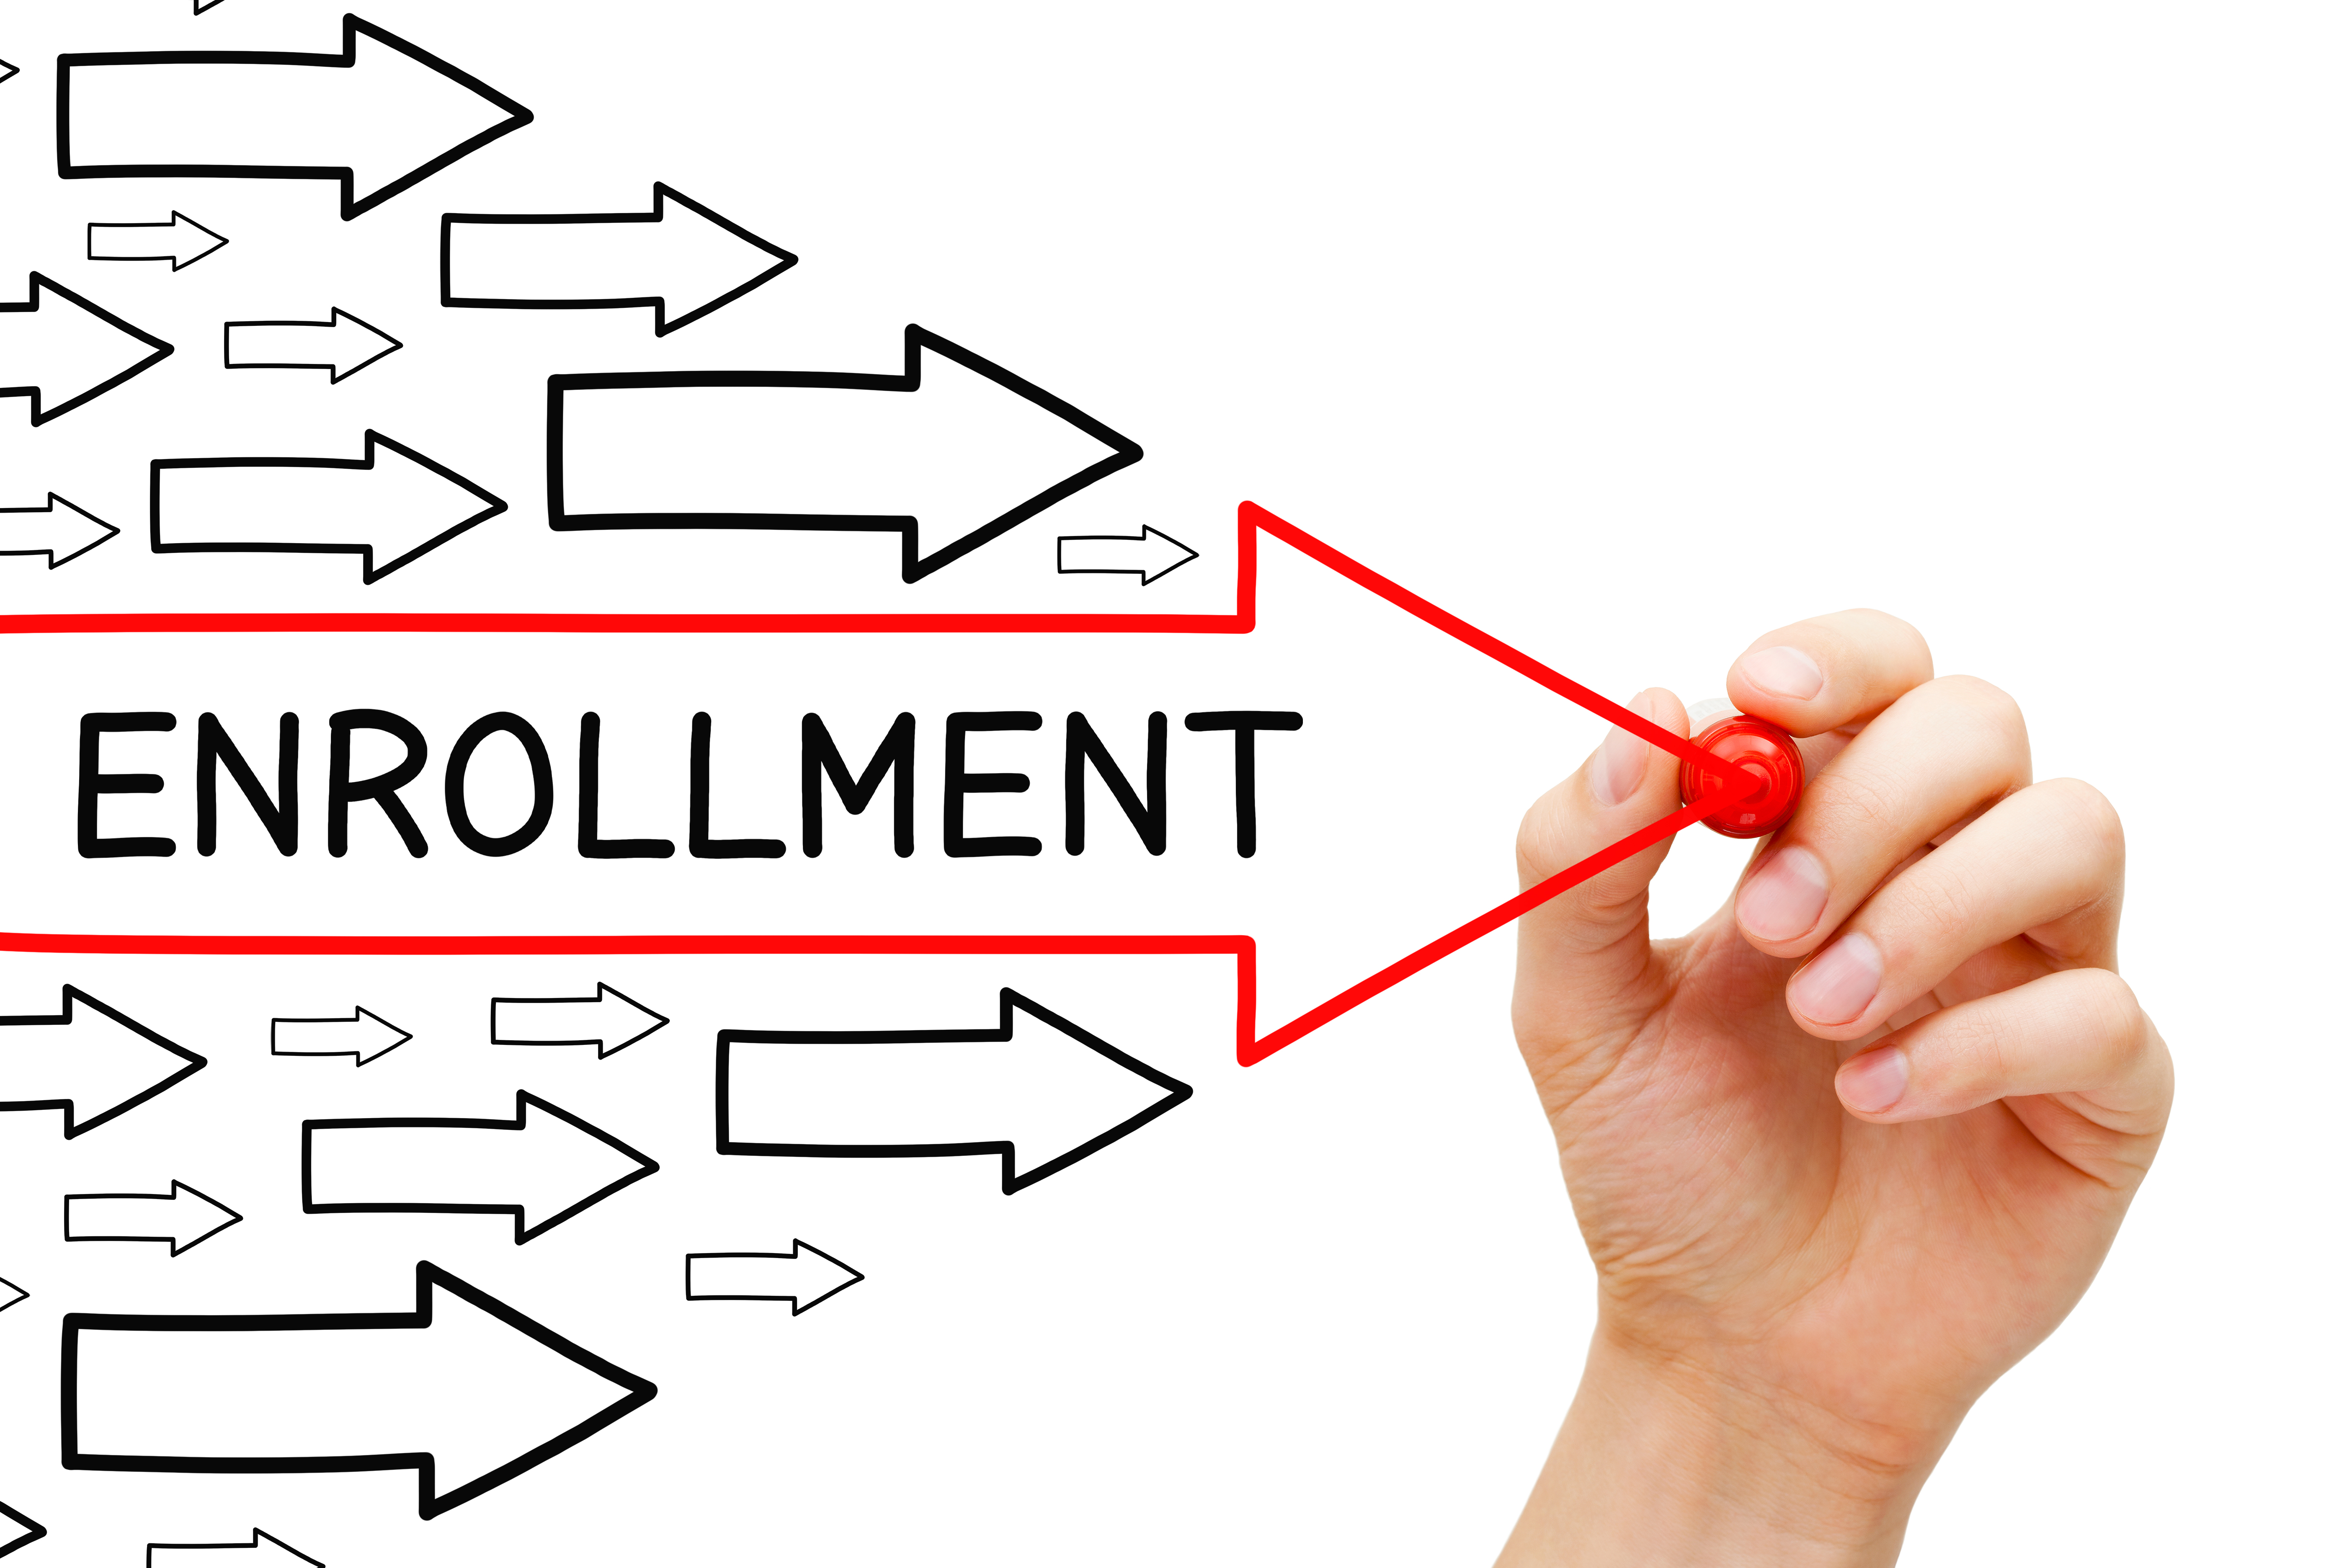 3 Enrollment Practices To Support Prospective Students from Recruitment to Yield